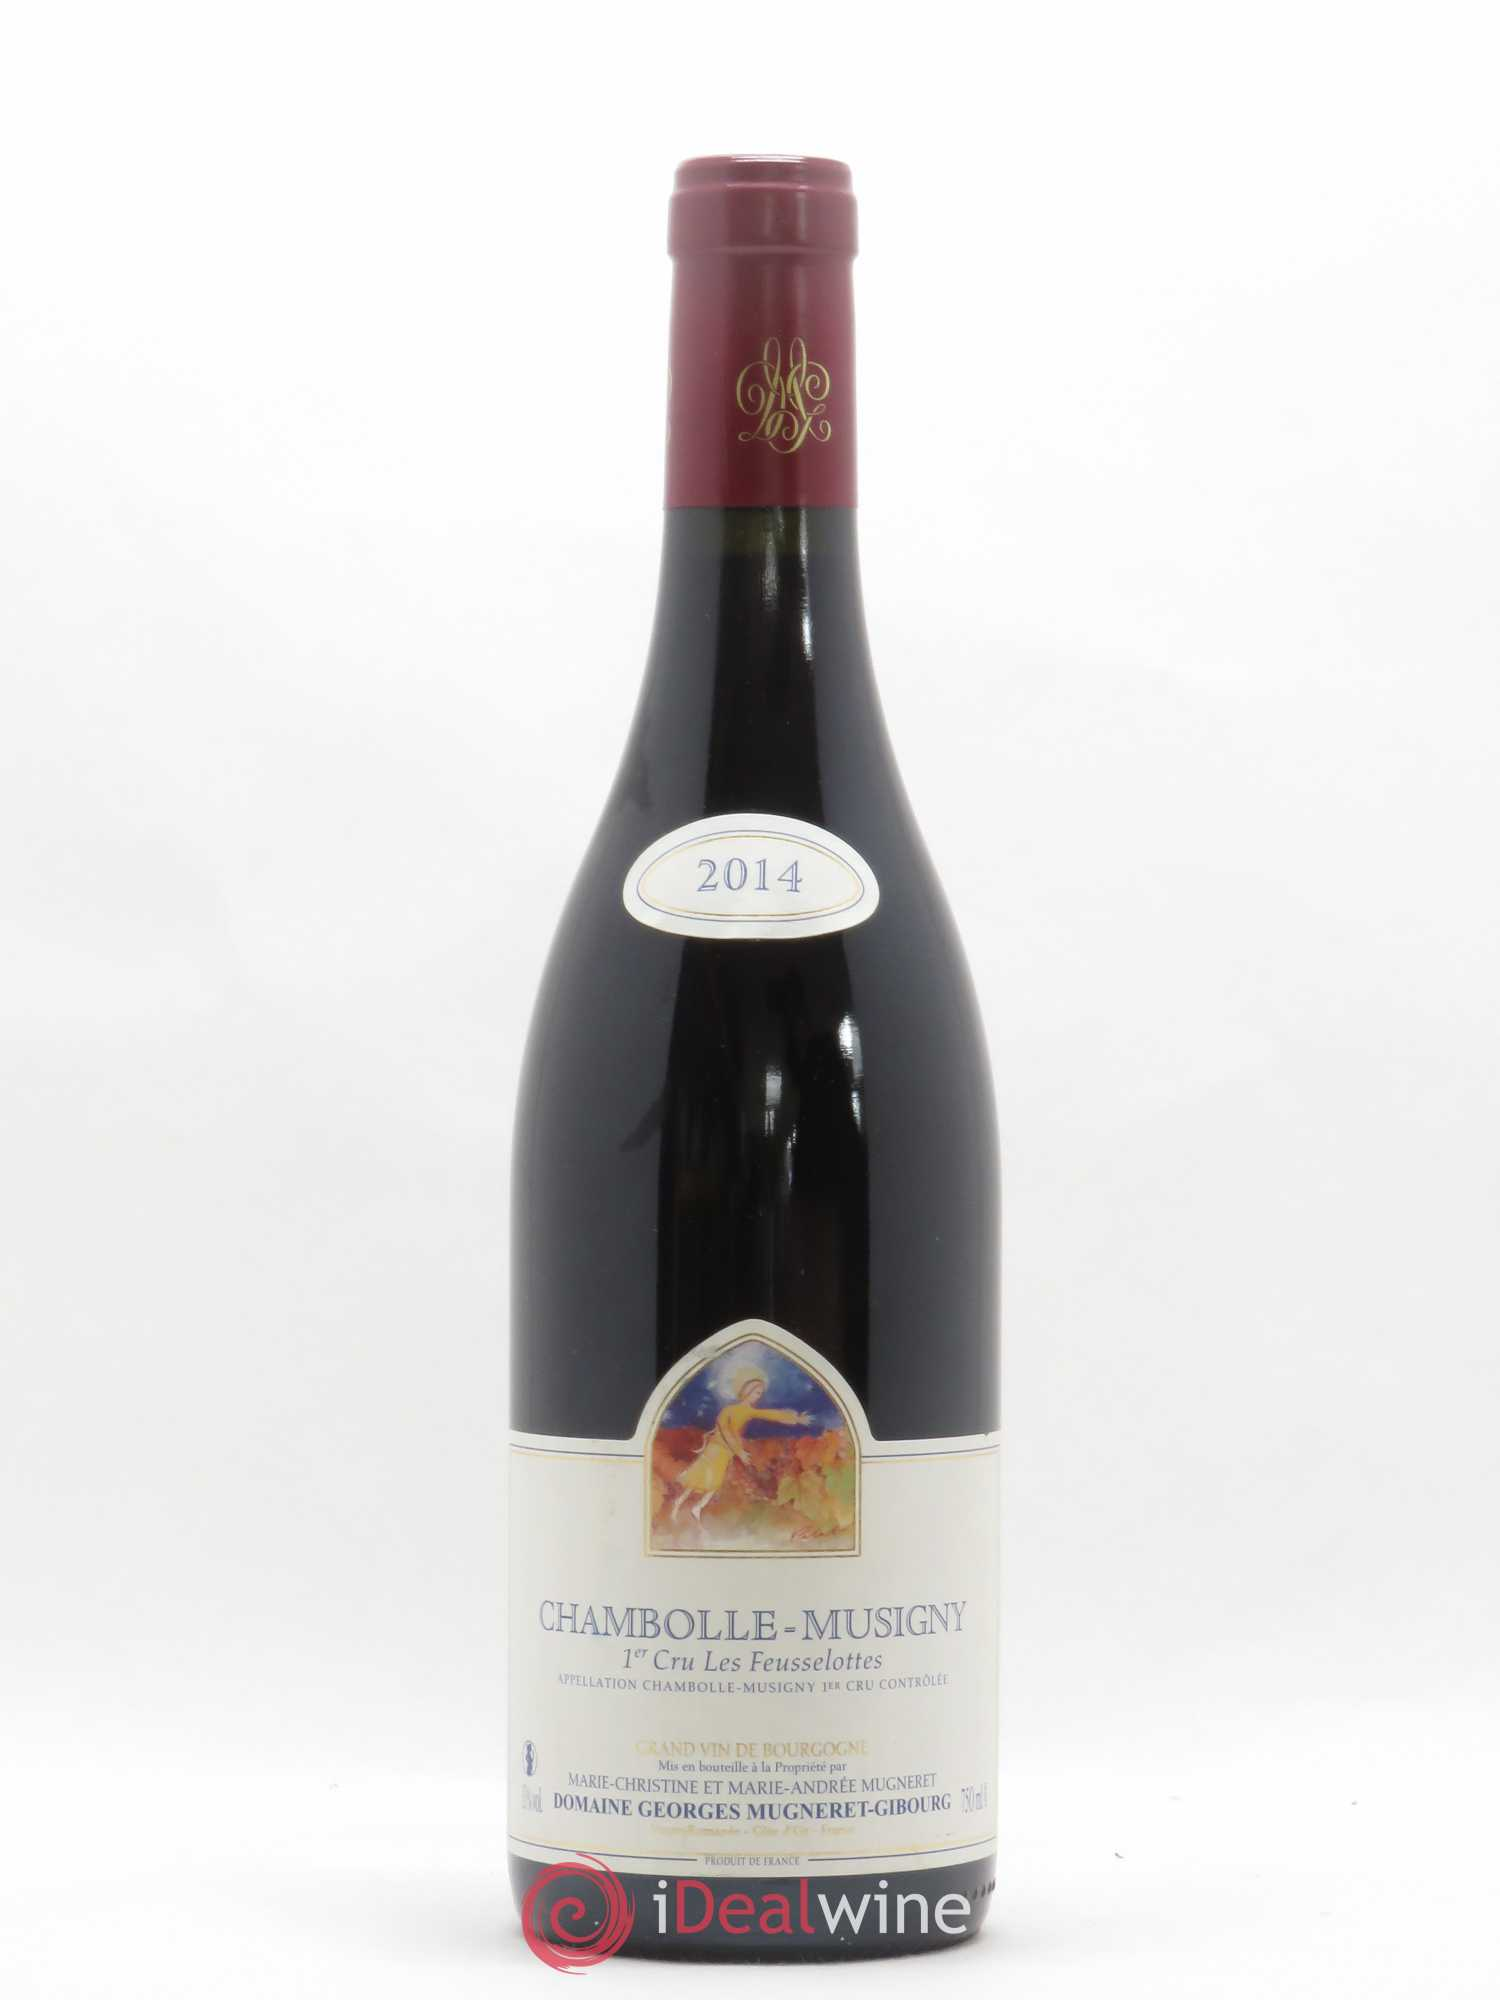 Chambolle-Musigny 1er Cru Les Feusselottes Georges Mugneret-Gibourg (Domaine)  2014 - Lot of 1 Bottle